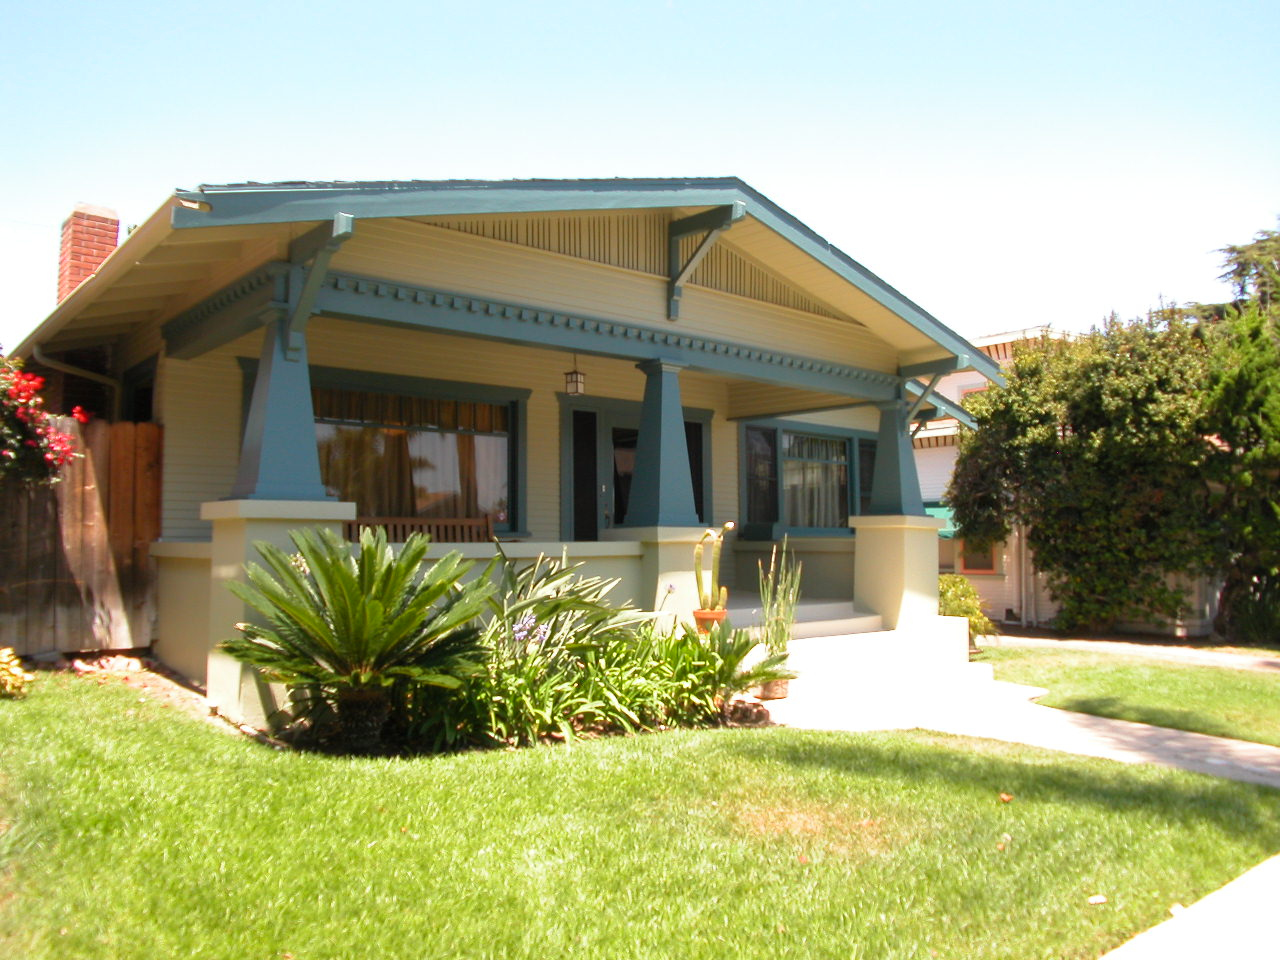 Bungalow american bungalow california bungalow - What is a bungalow style home ...